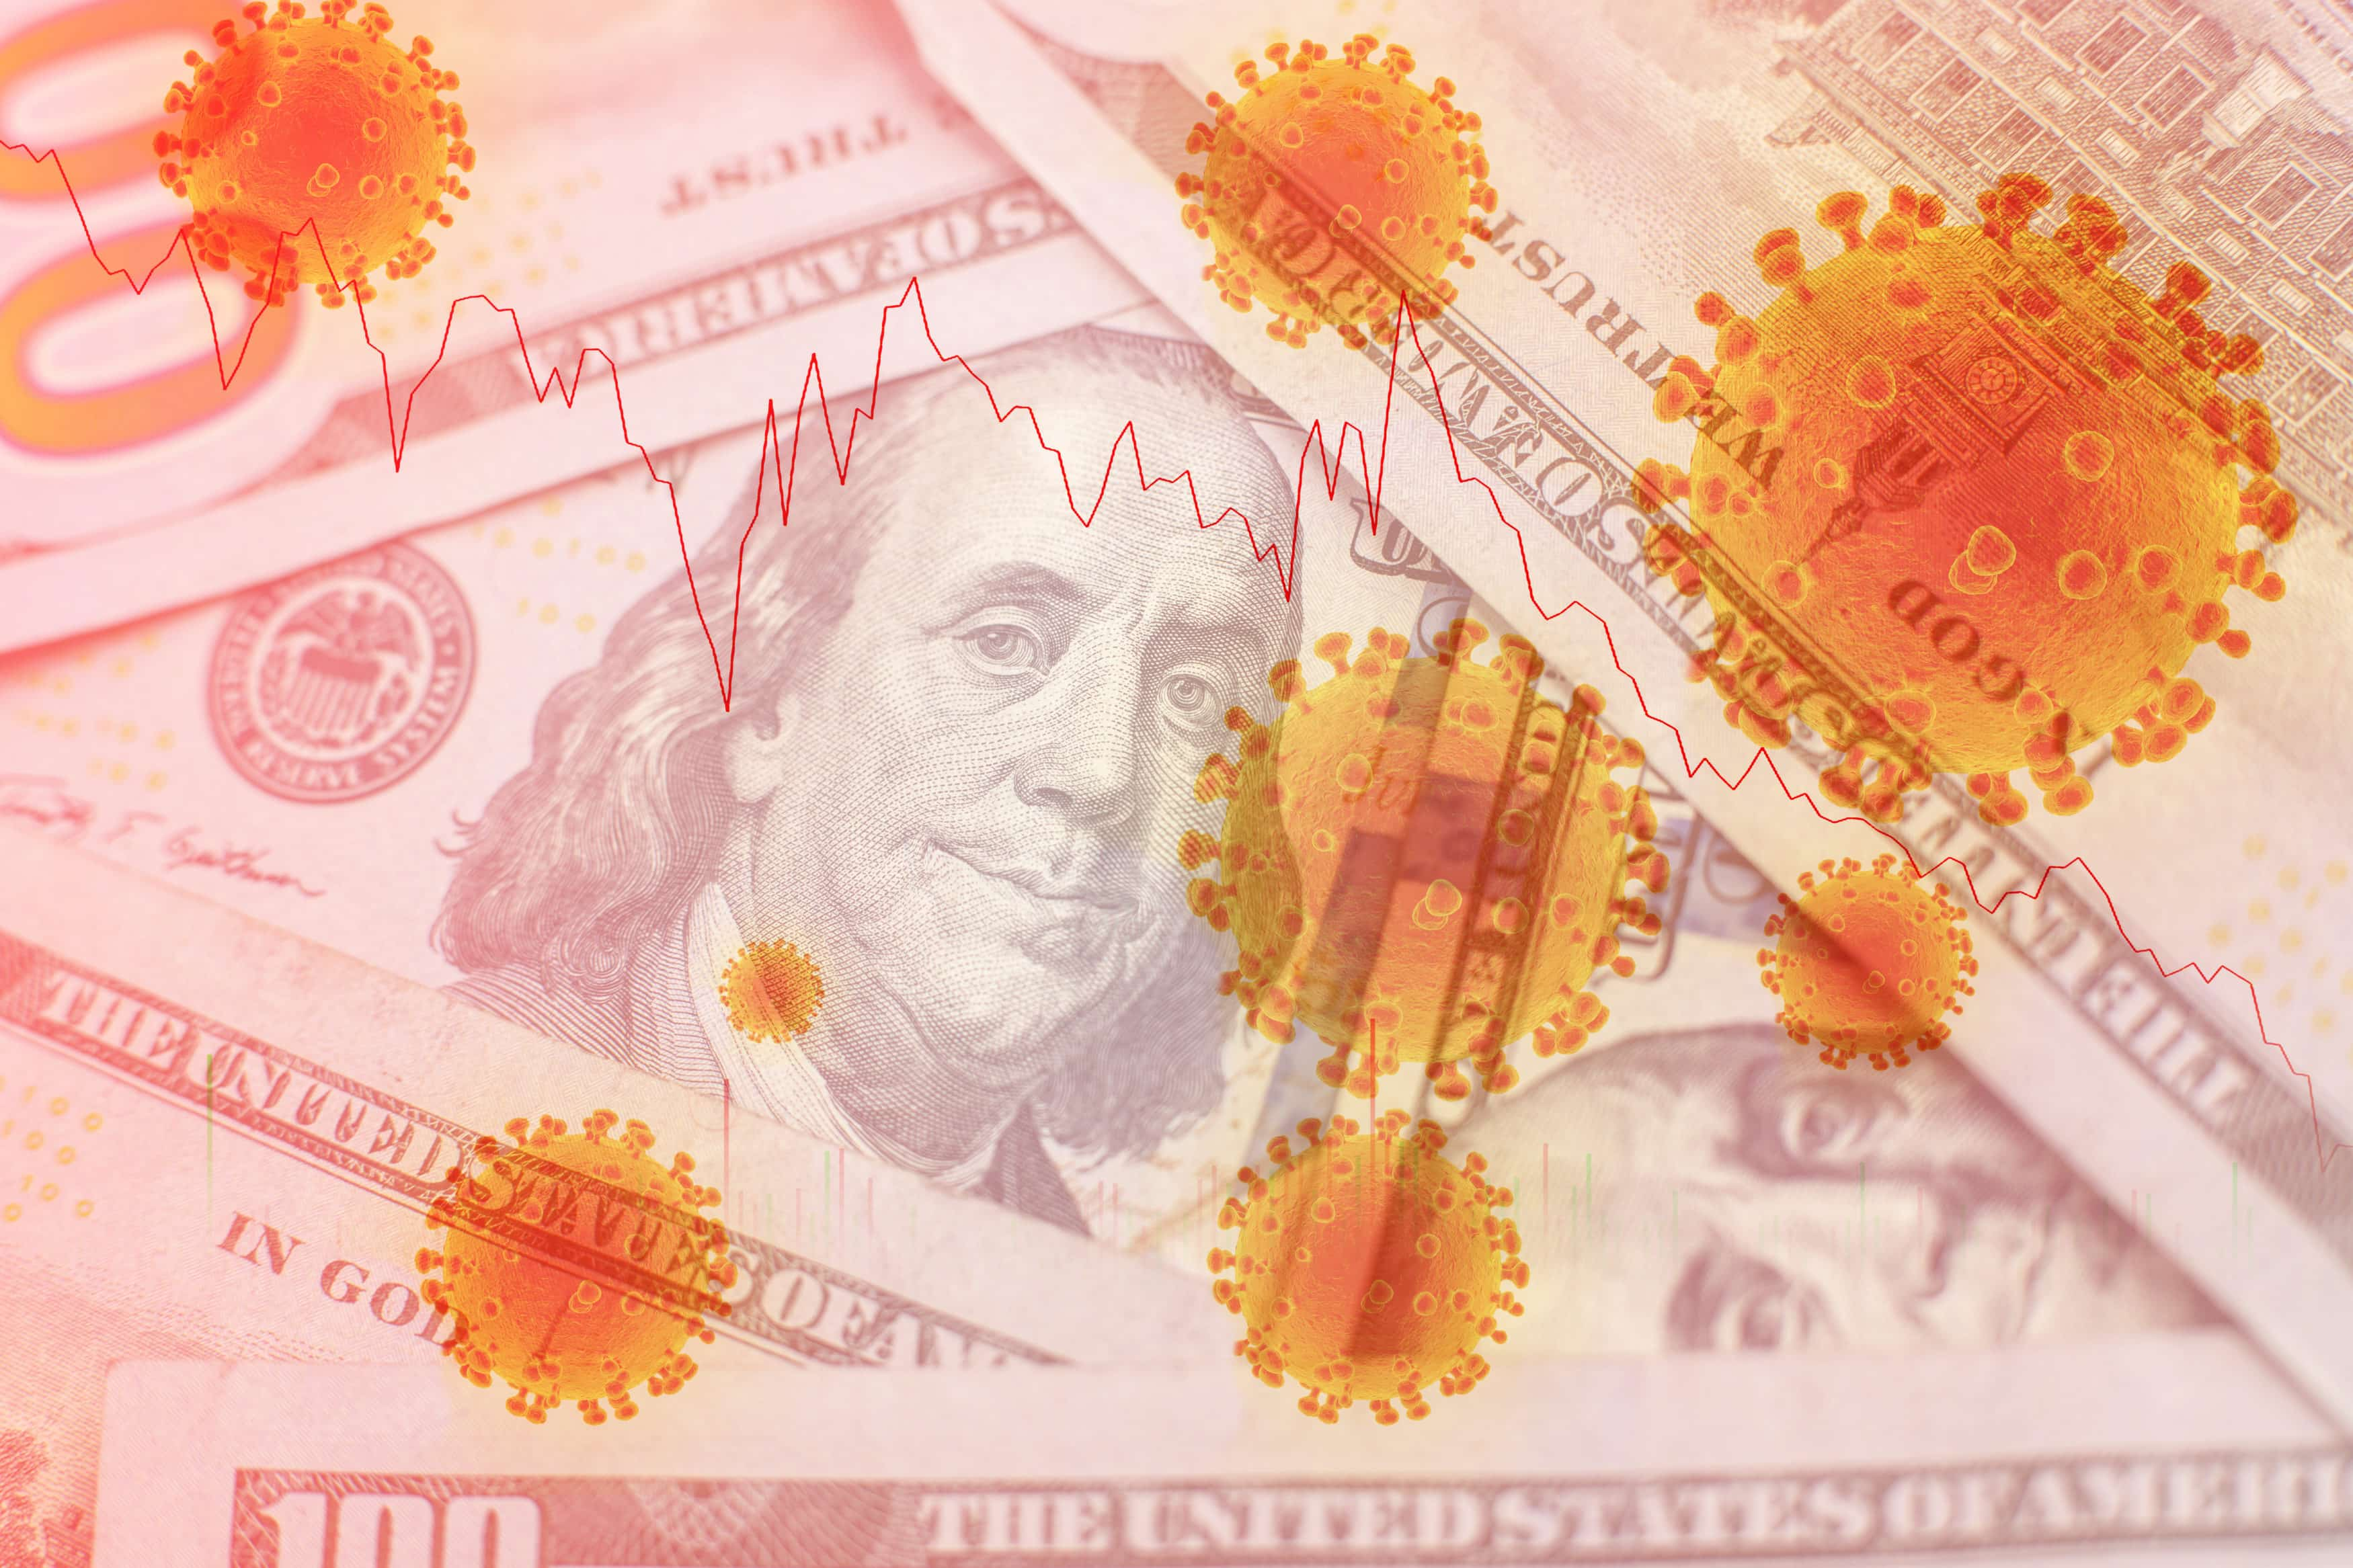 COVID-19 coronavirus in USA, 100 dollar money bill with coronavirus . COVID-19 affects global stock market. World economy hit by corona virus outbreak and pandemic fears. Crisis and finance concept